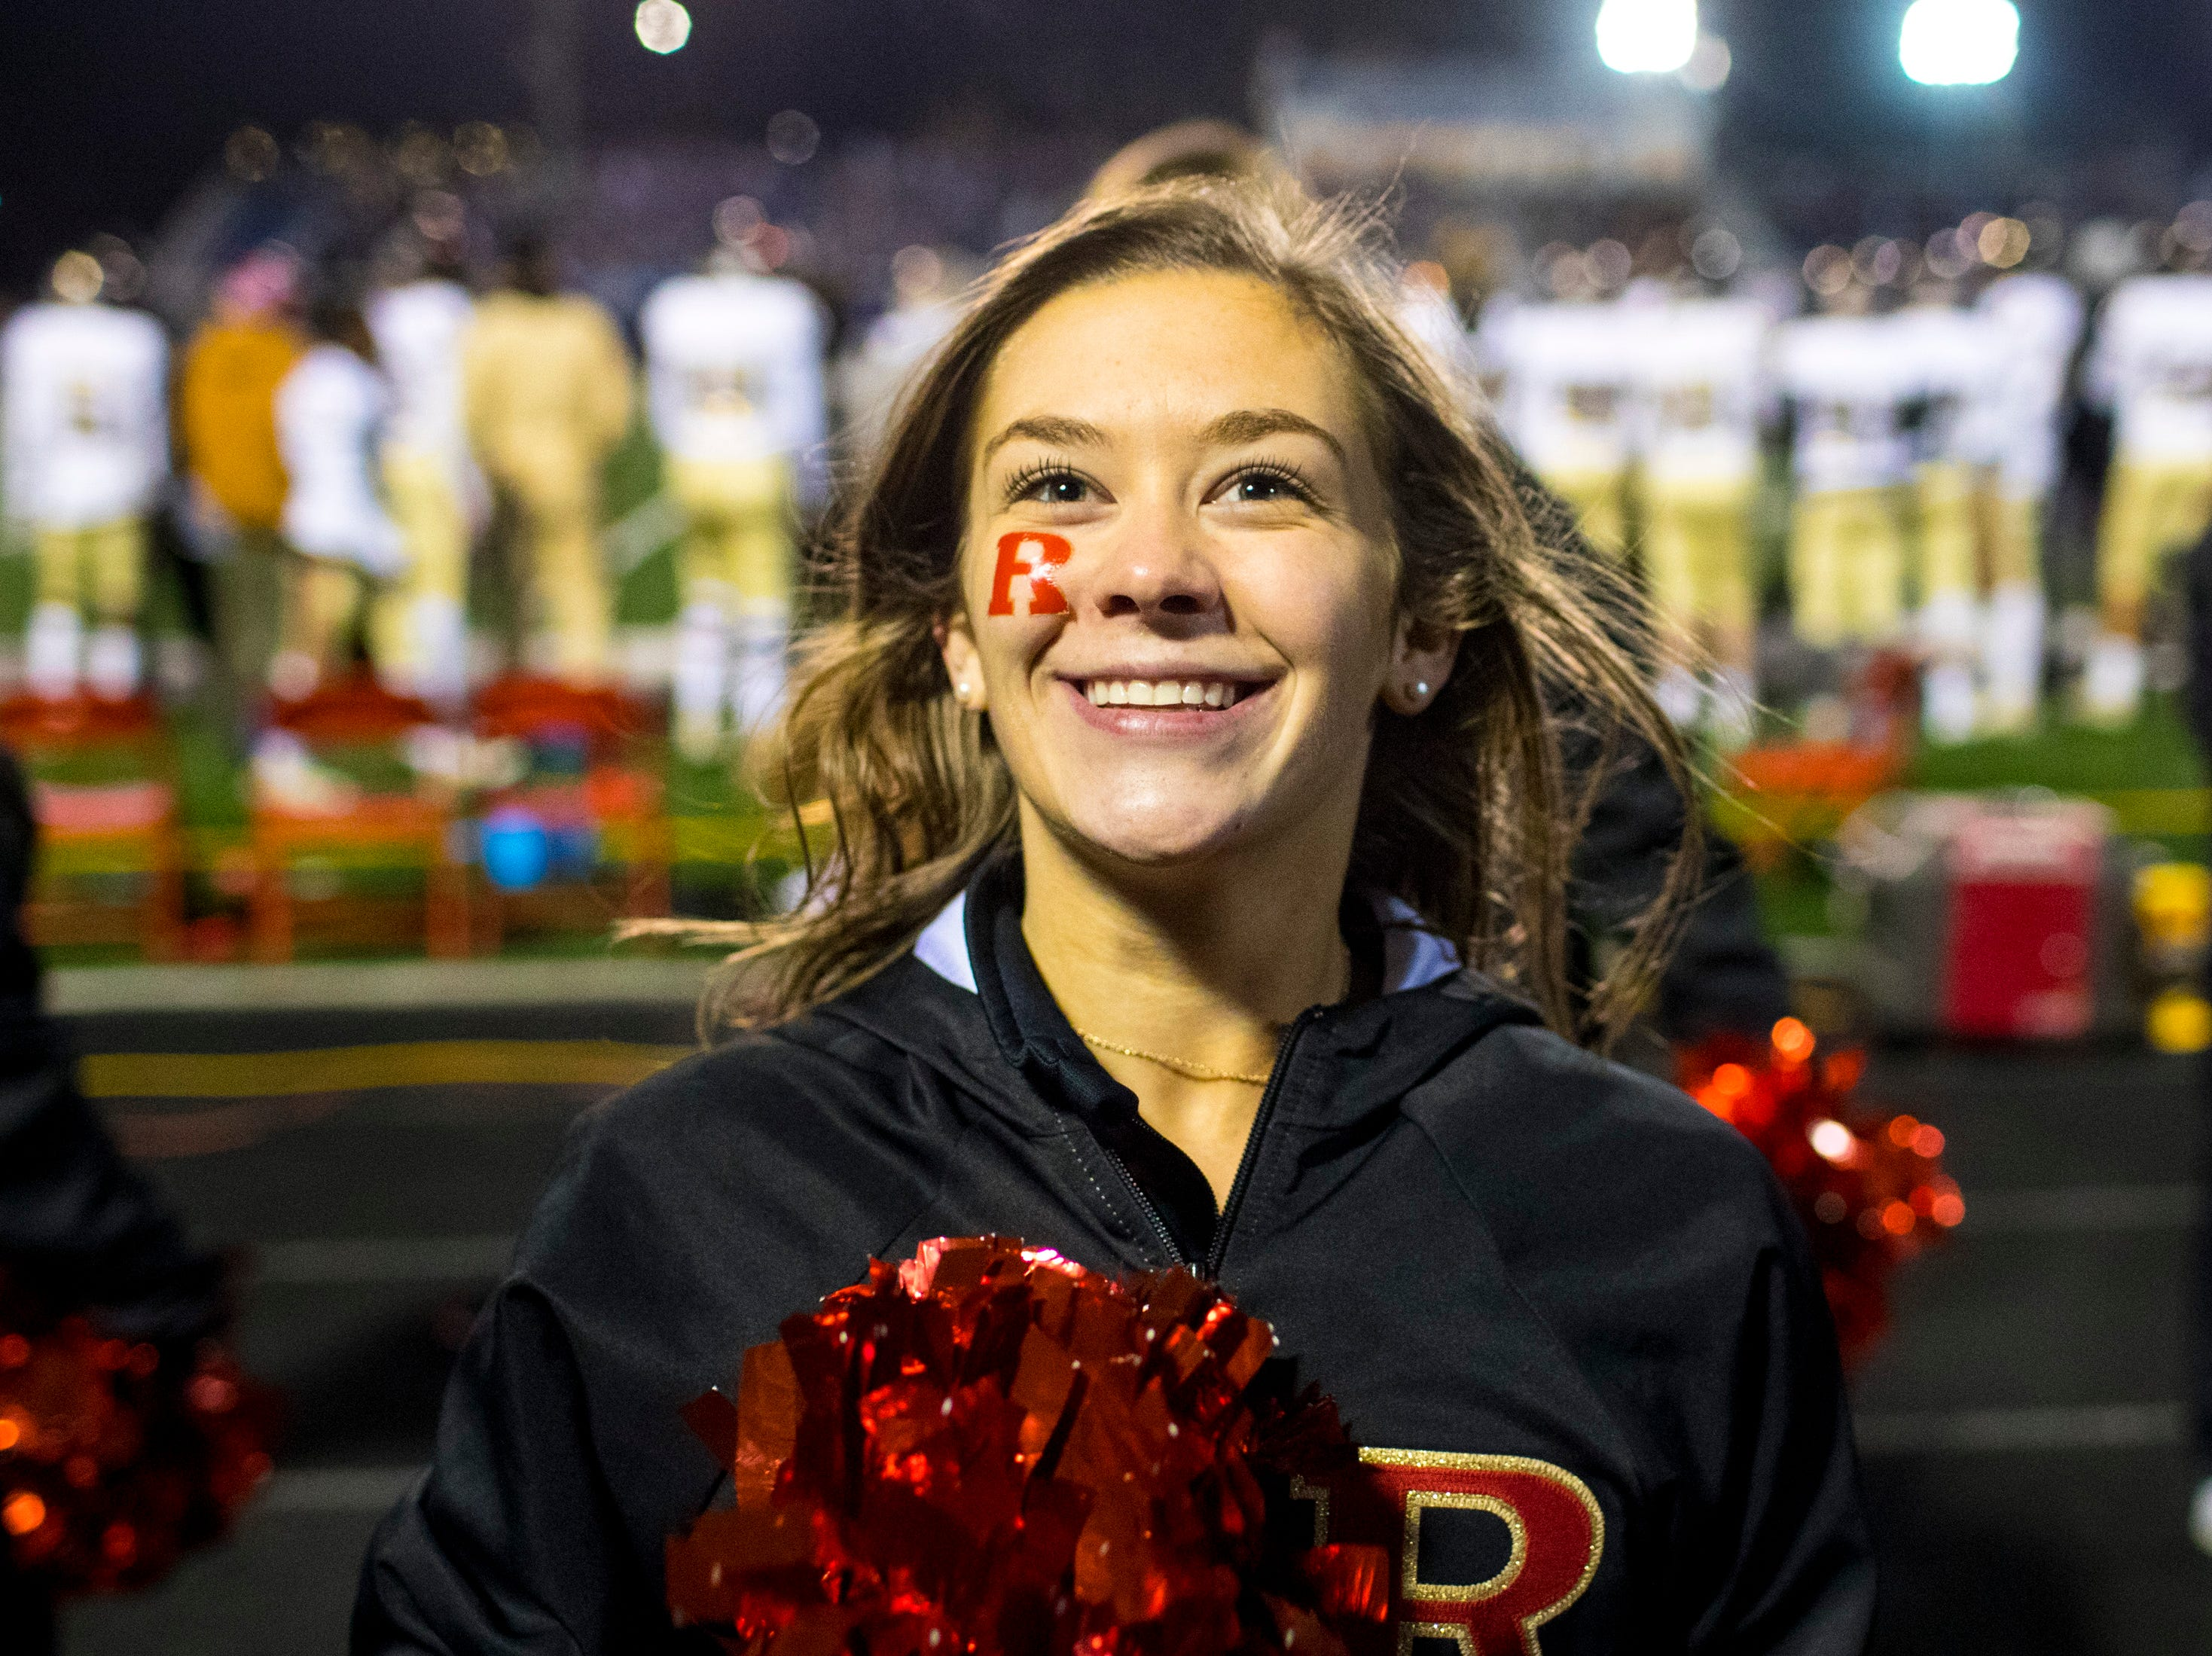 Ravenwood cheerleader Addie Raymer cheers during Brentwood's game against Ravenwood at Brentwood High School in Brentwood on Friday, Nov. 16, 2018.